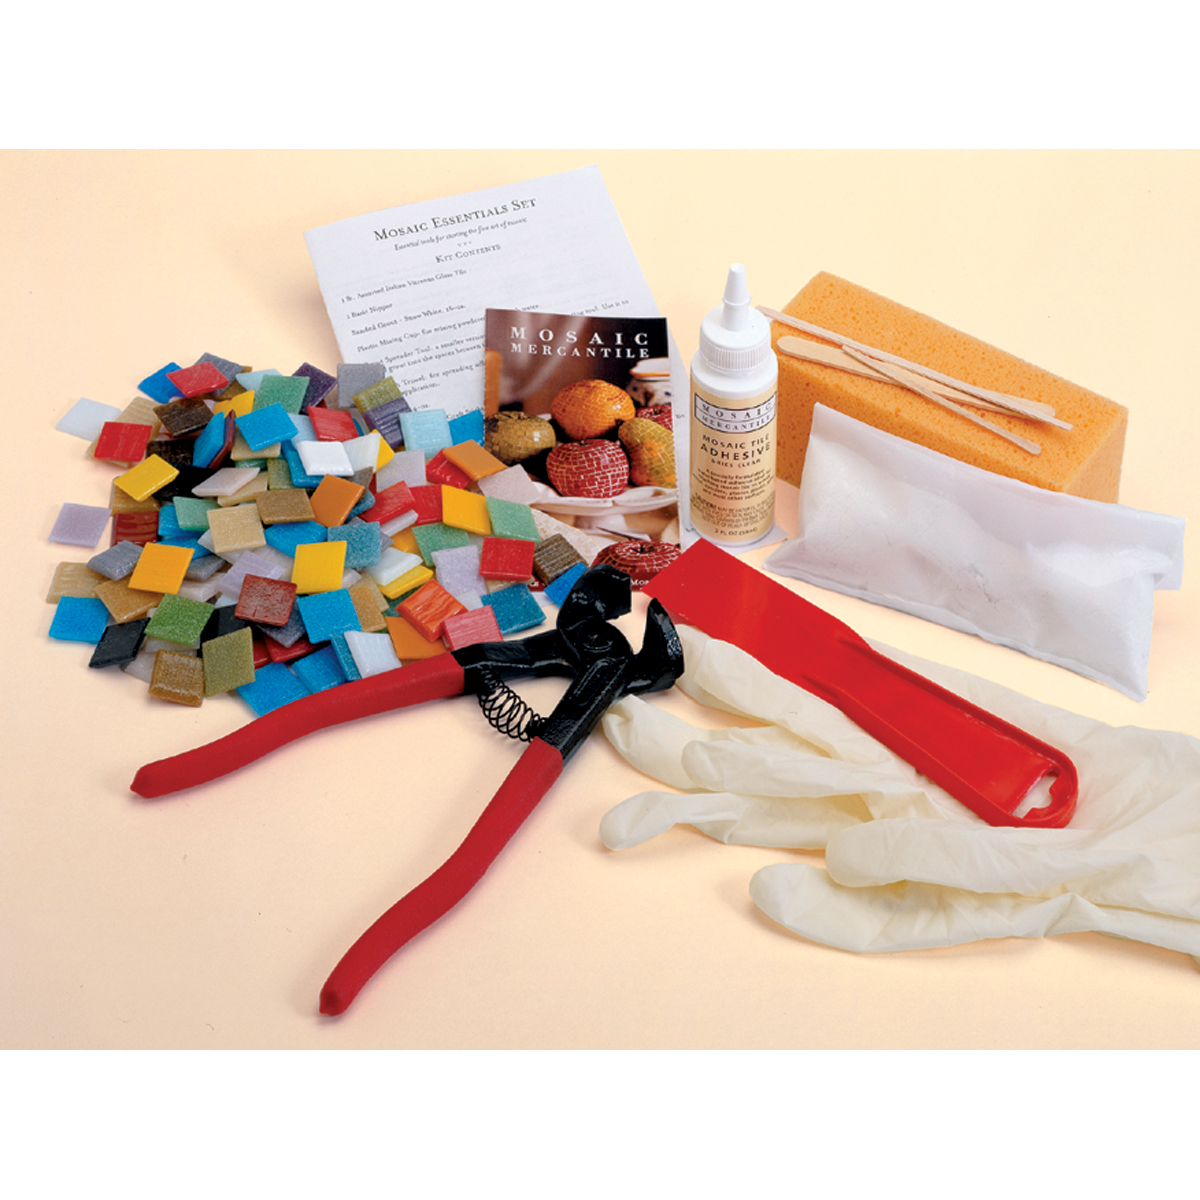 Mosaic Mercantile Mosaic Essential Set With Nipper